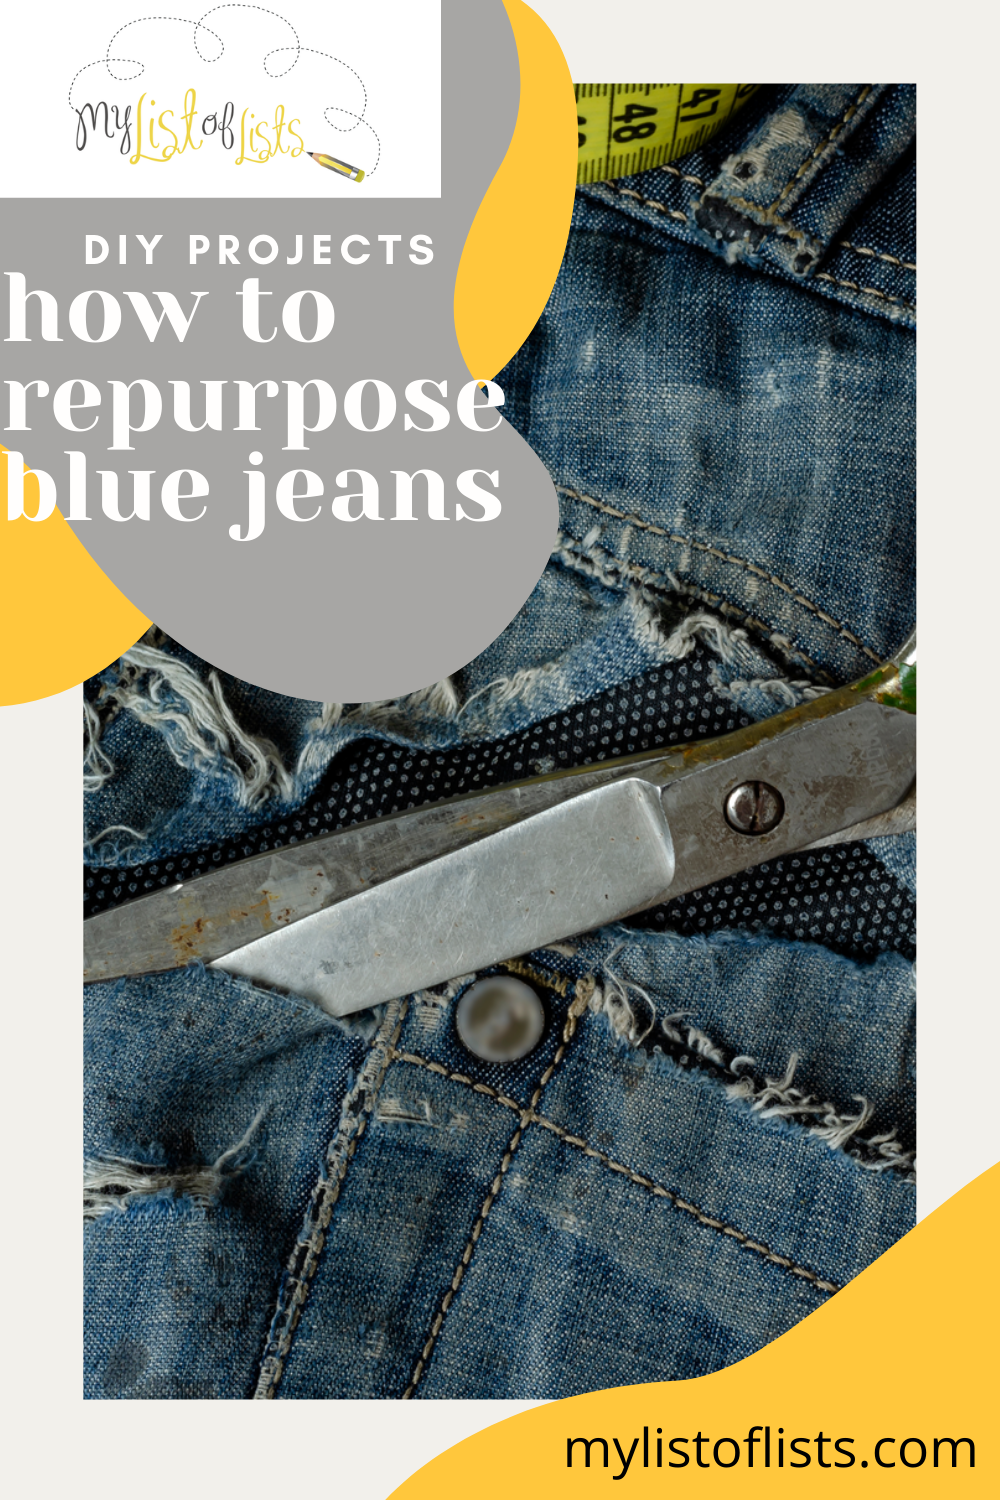 Everyone has an old pair of blue jeans that doesn't quite fit anymore. Instead of throwing those away, turn them into something awesome with these easy ways to repurpose blue jeans. These DIY ideas are super simple. #diy #projects #mylistoflistsblog